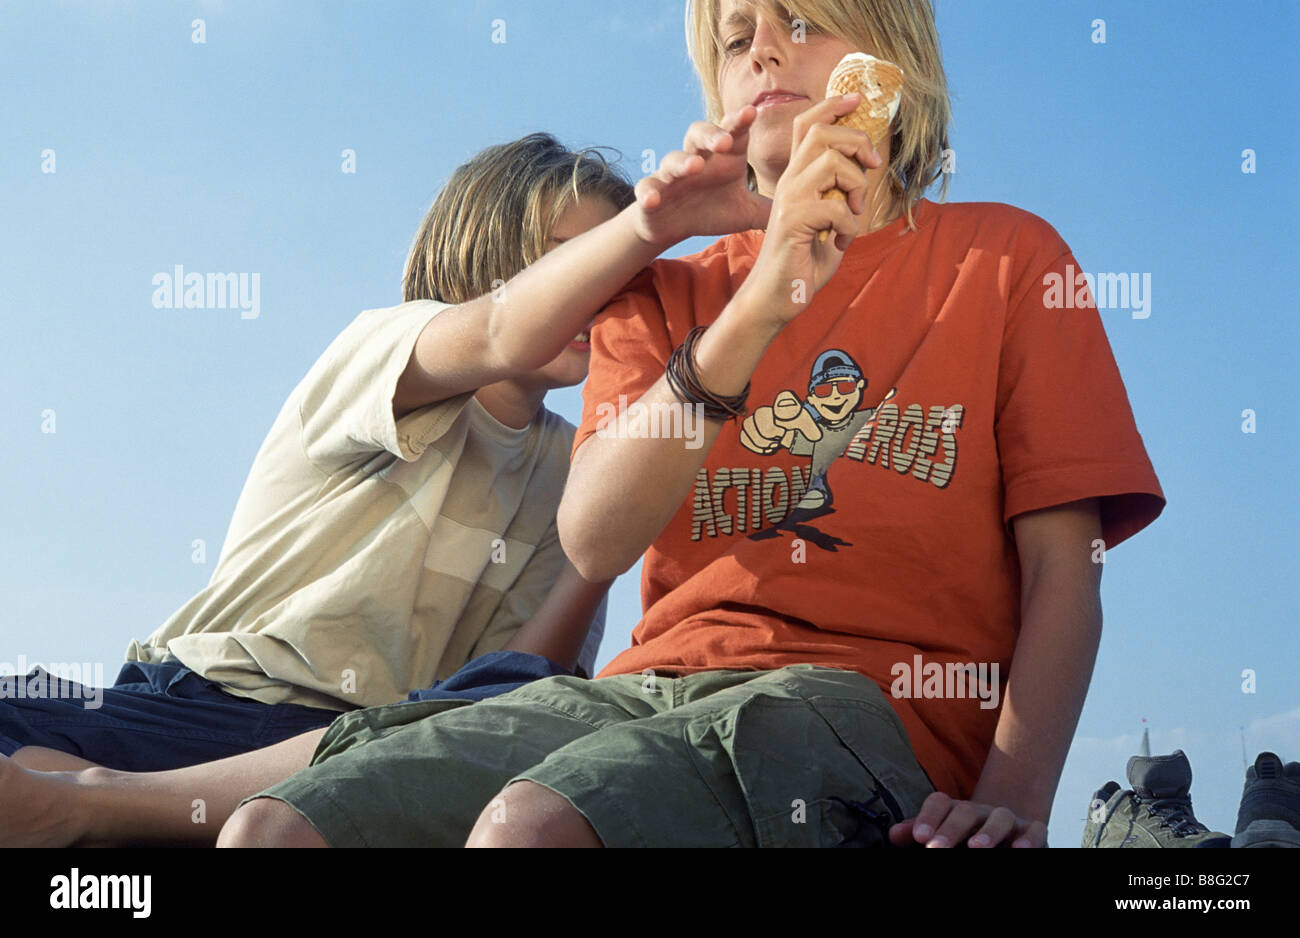 Boy grasping at the Ice-cream of his Friend - Scene - Sweets - Disagreement - Stock Image